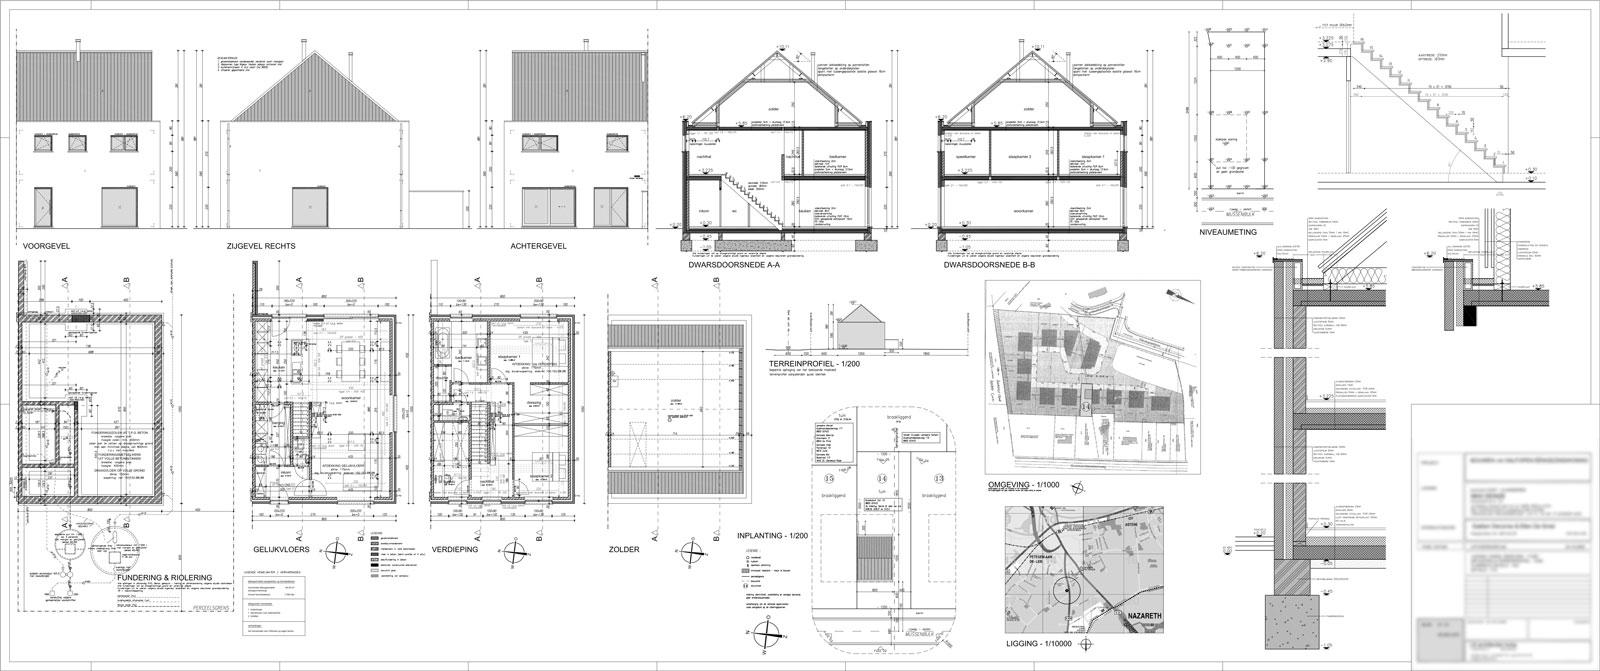 gd tekenburo ga 235 tan deronne deinze architectural designs house plans architectural floor plan